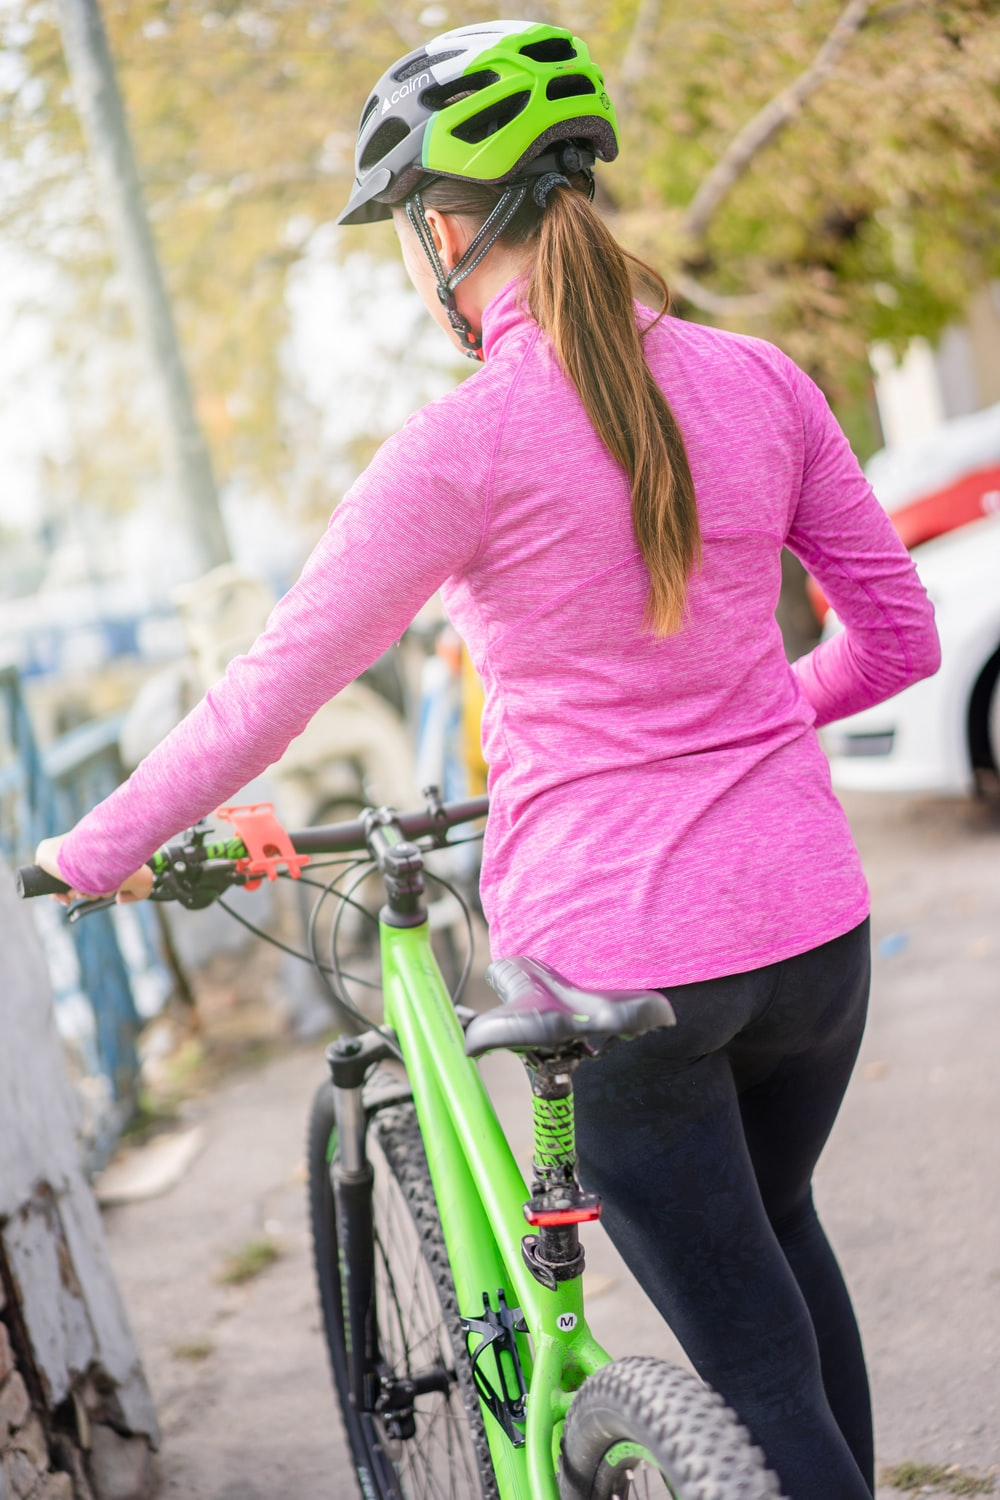 woman in pink long sleeve shirt and black pants riding green bicycle during daytime